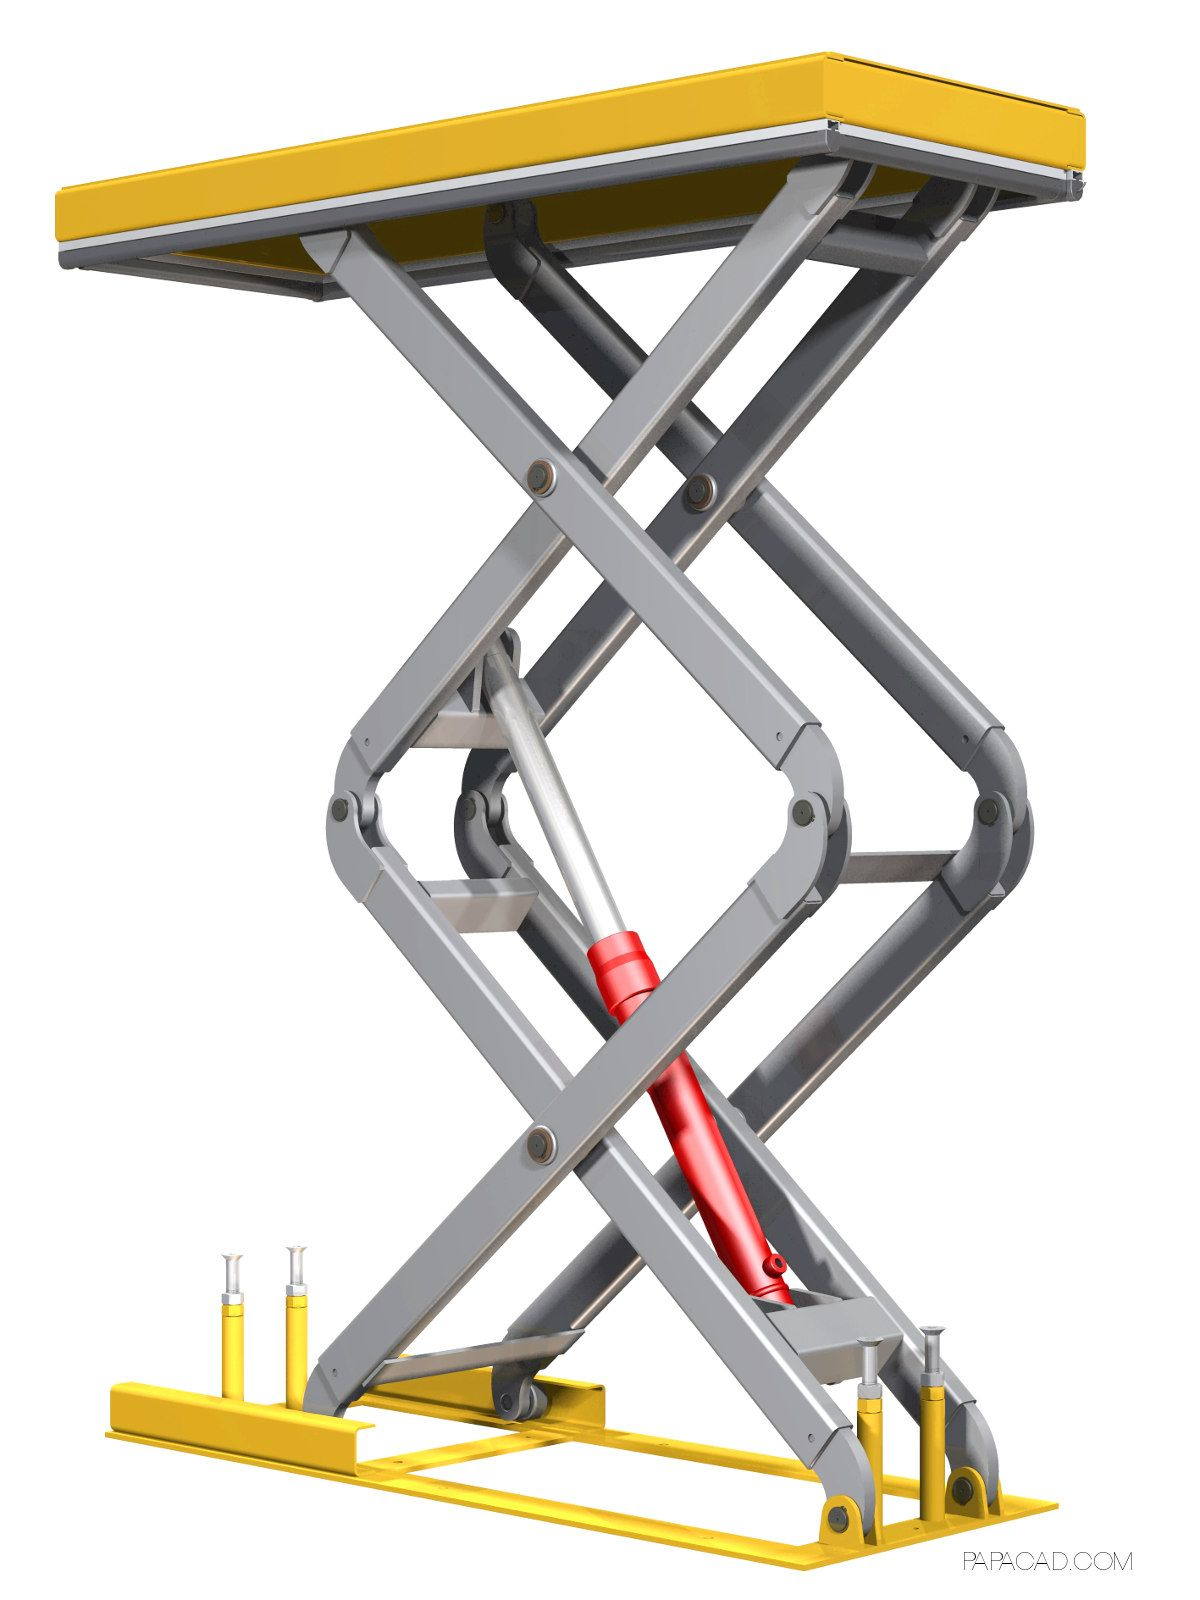 Groovy Scissor Lift Table Plans Diy Scissor Lift Table Metal Download Free Architecture Designs Crovemadebymaigaardcom